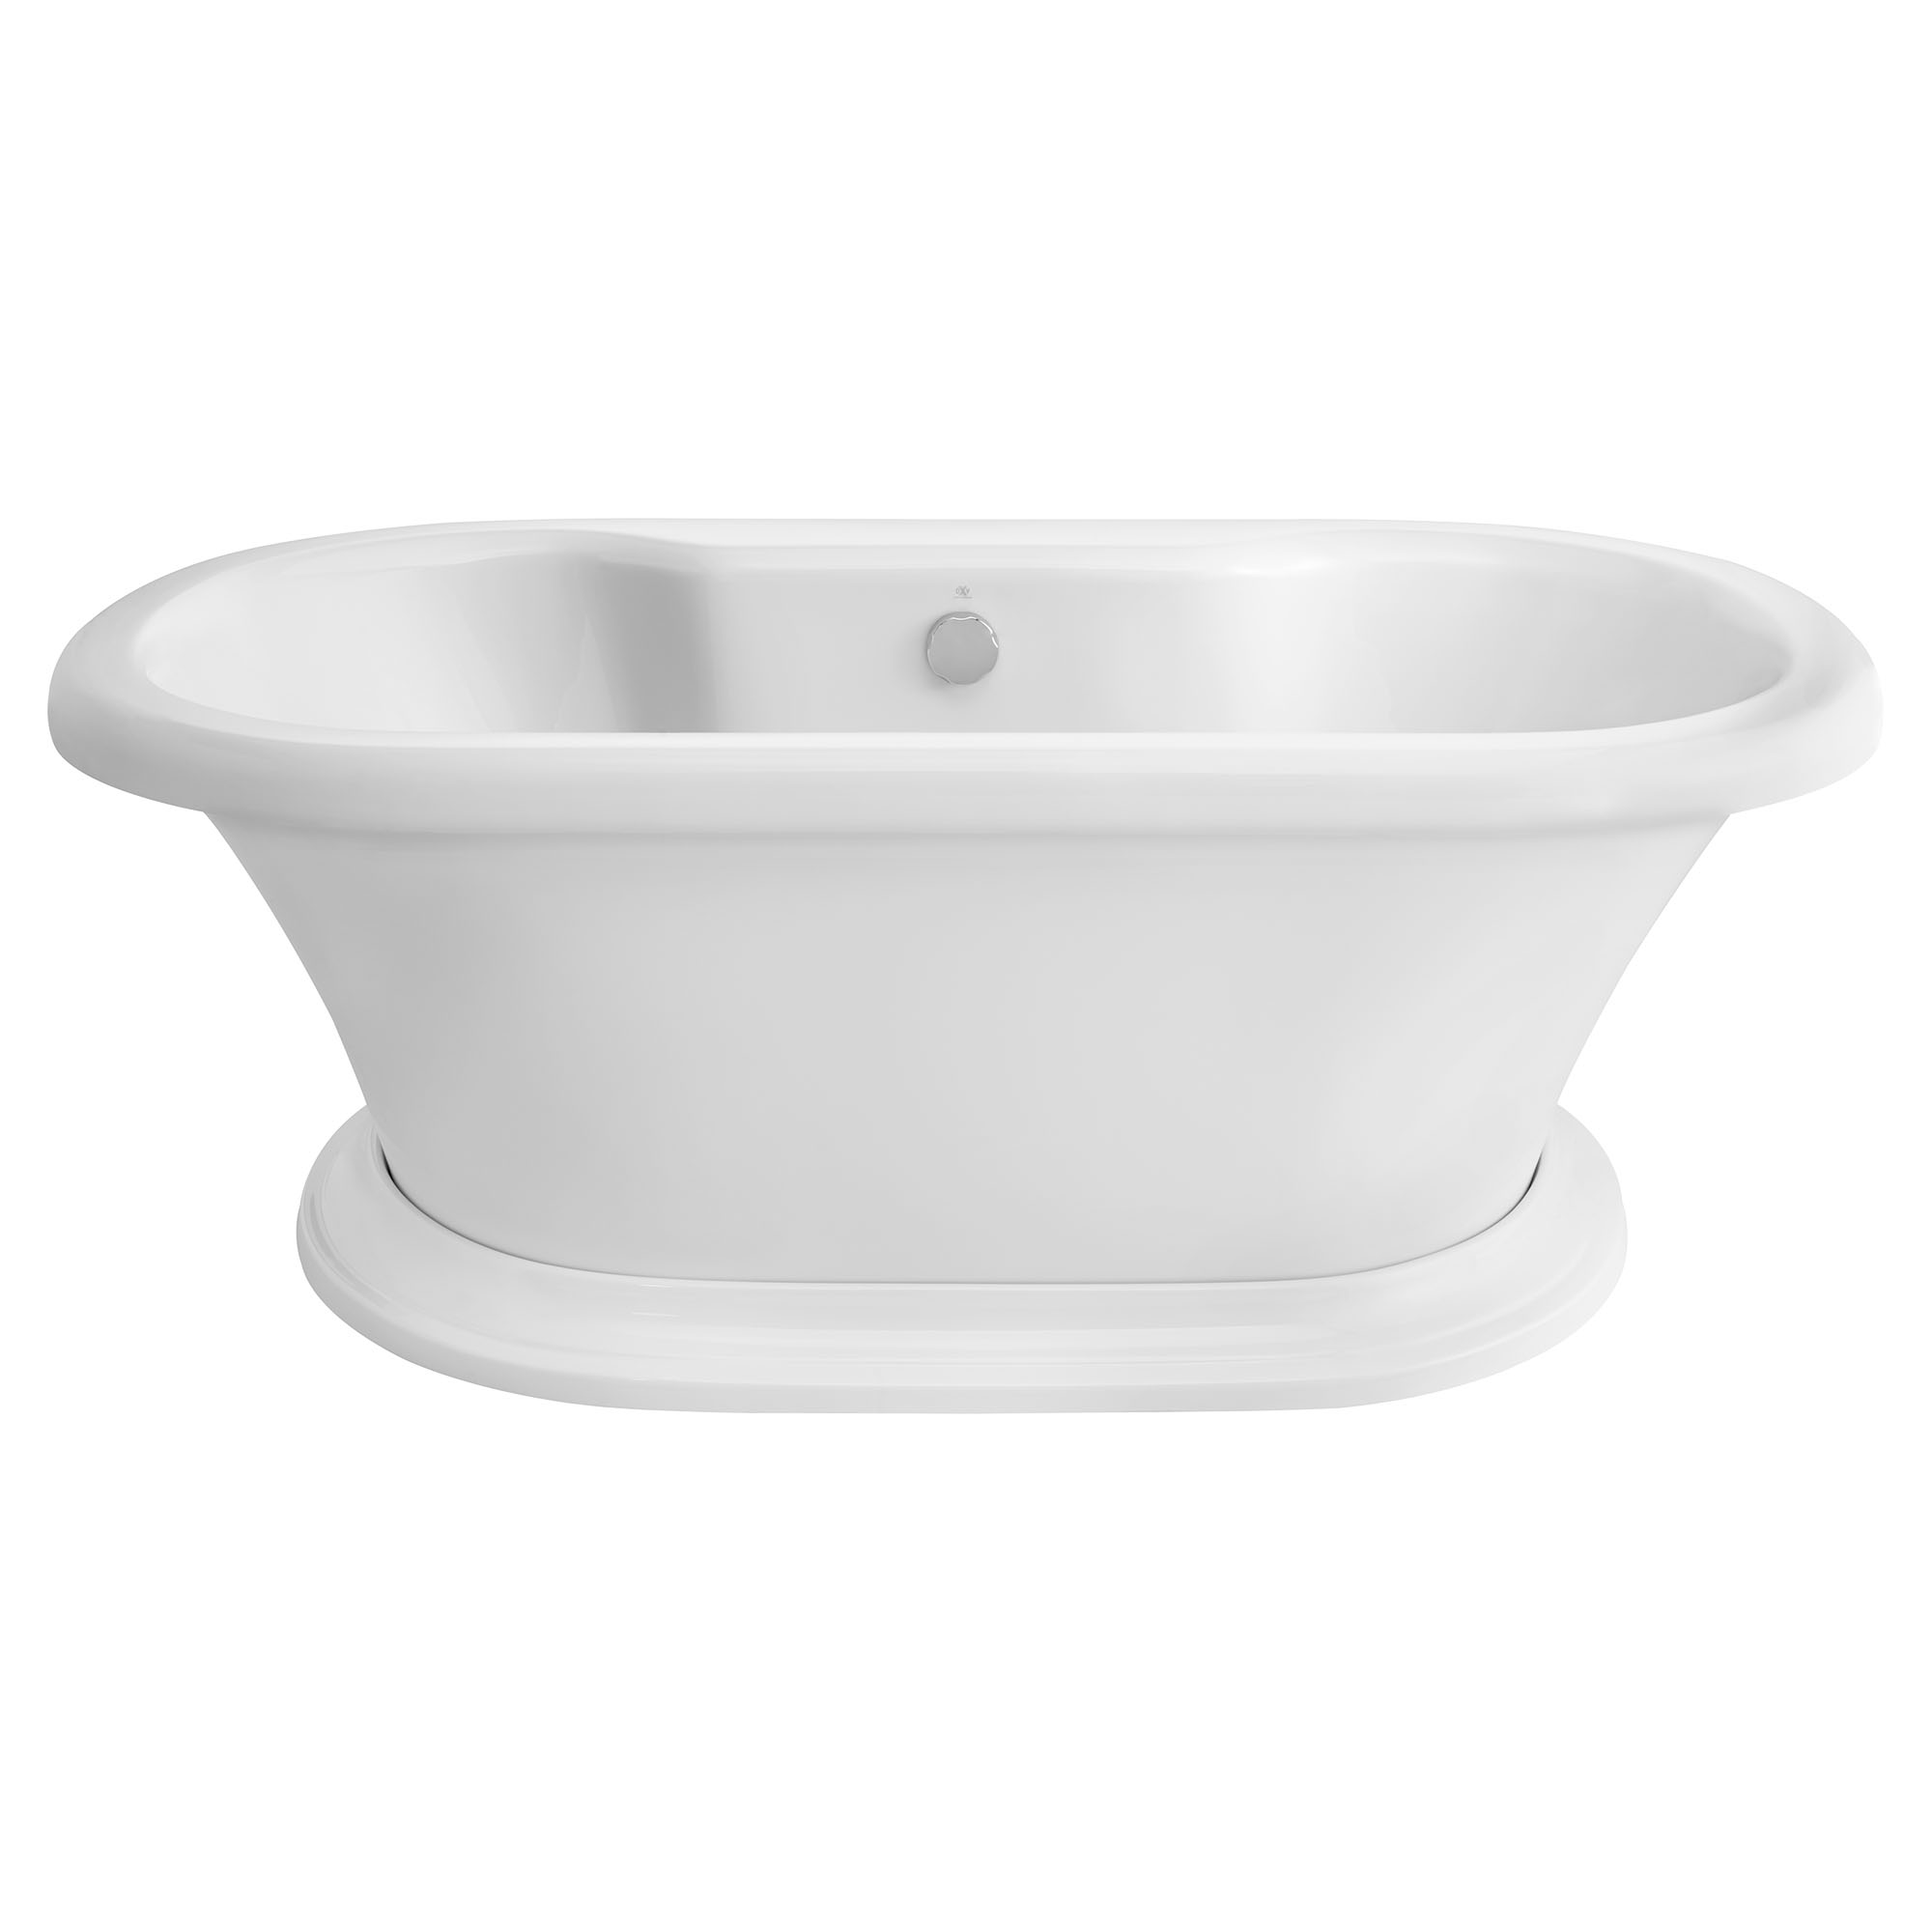 St. George Freestanding Soaking Tub with Deck